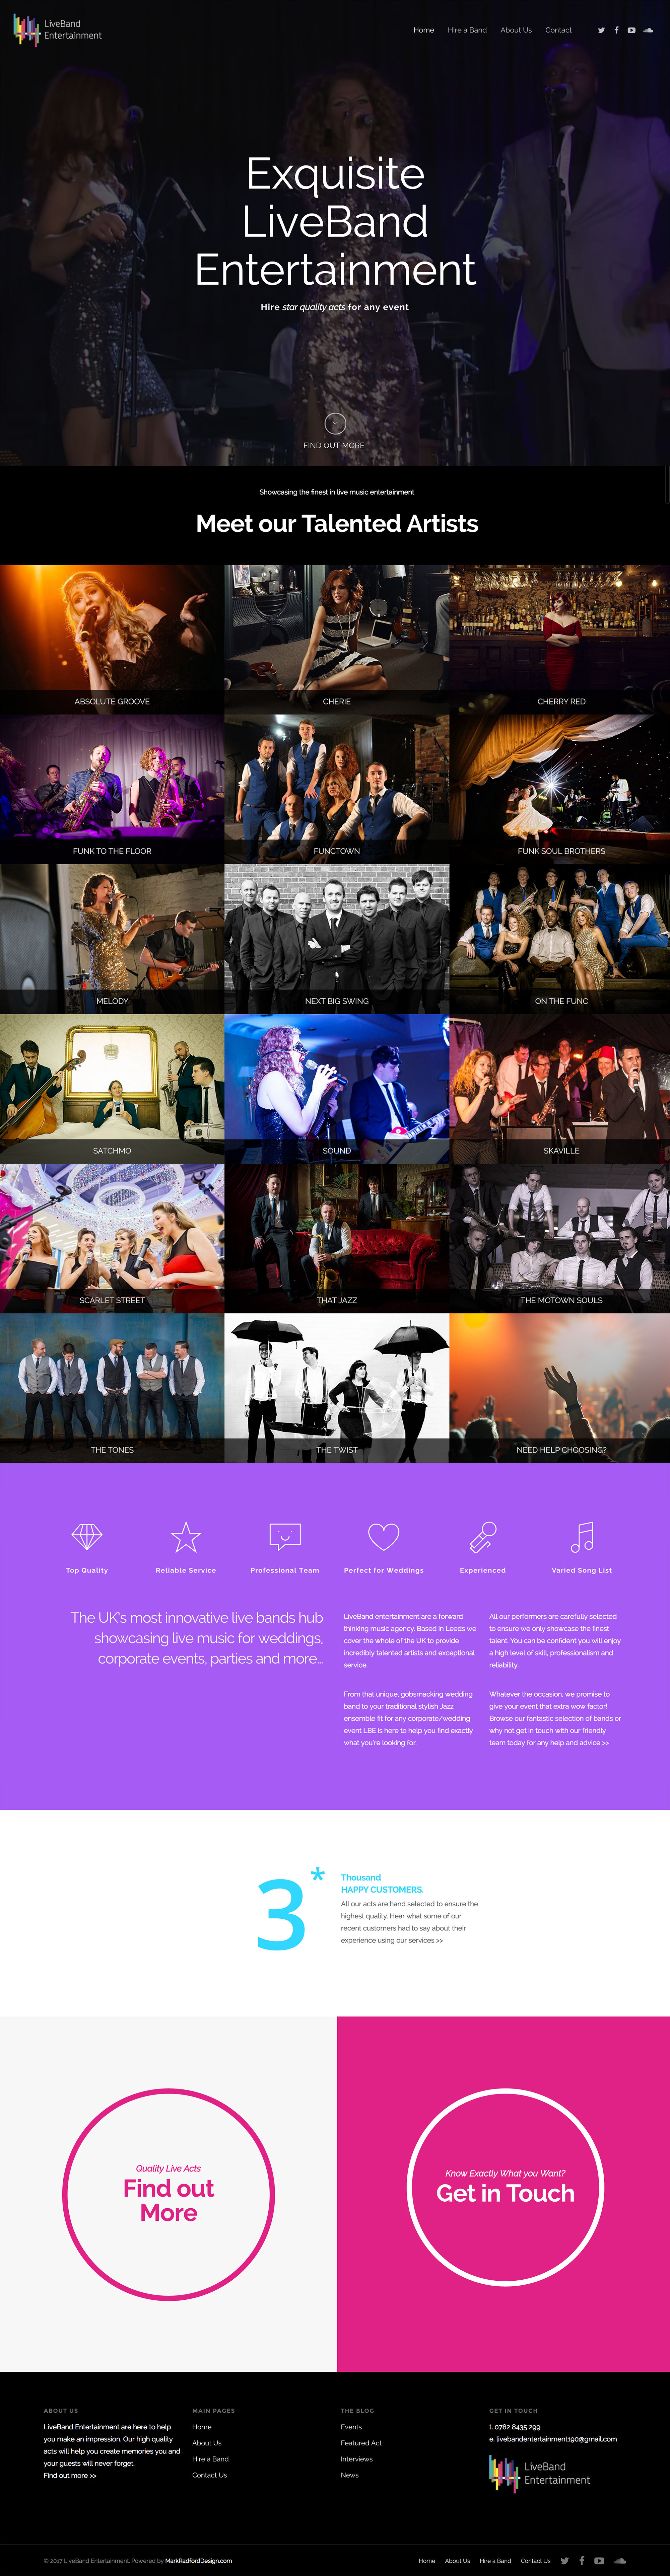 LiveBand-Entertainment